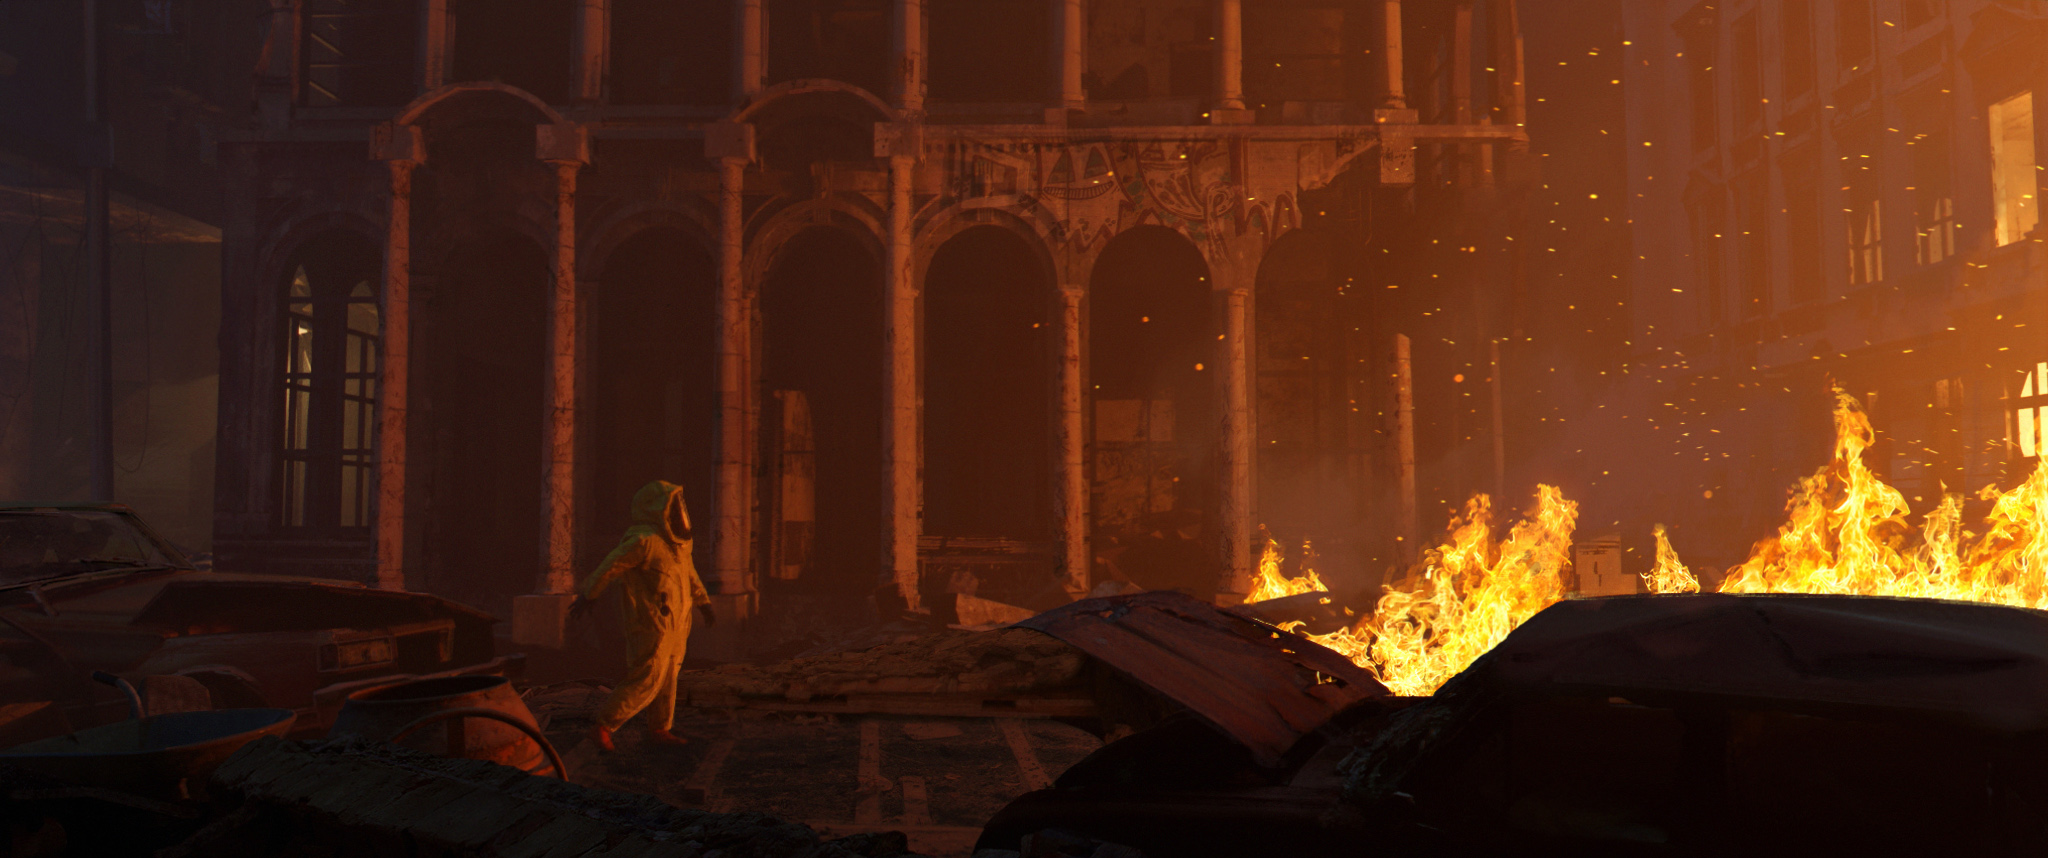 Cinematic Concept Design, ASHES, By The Fire